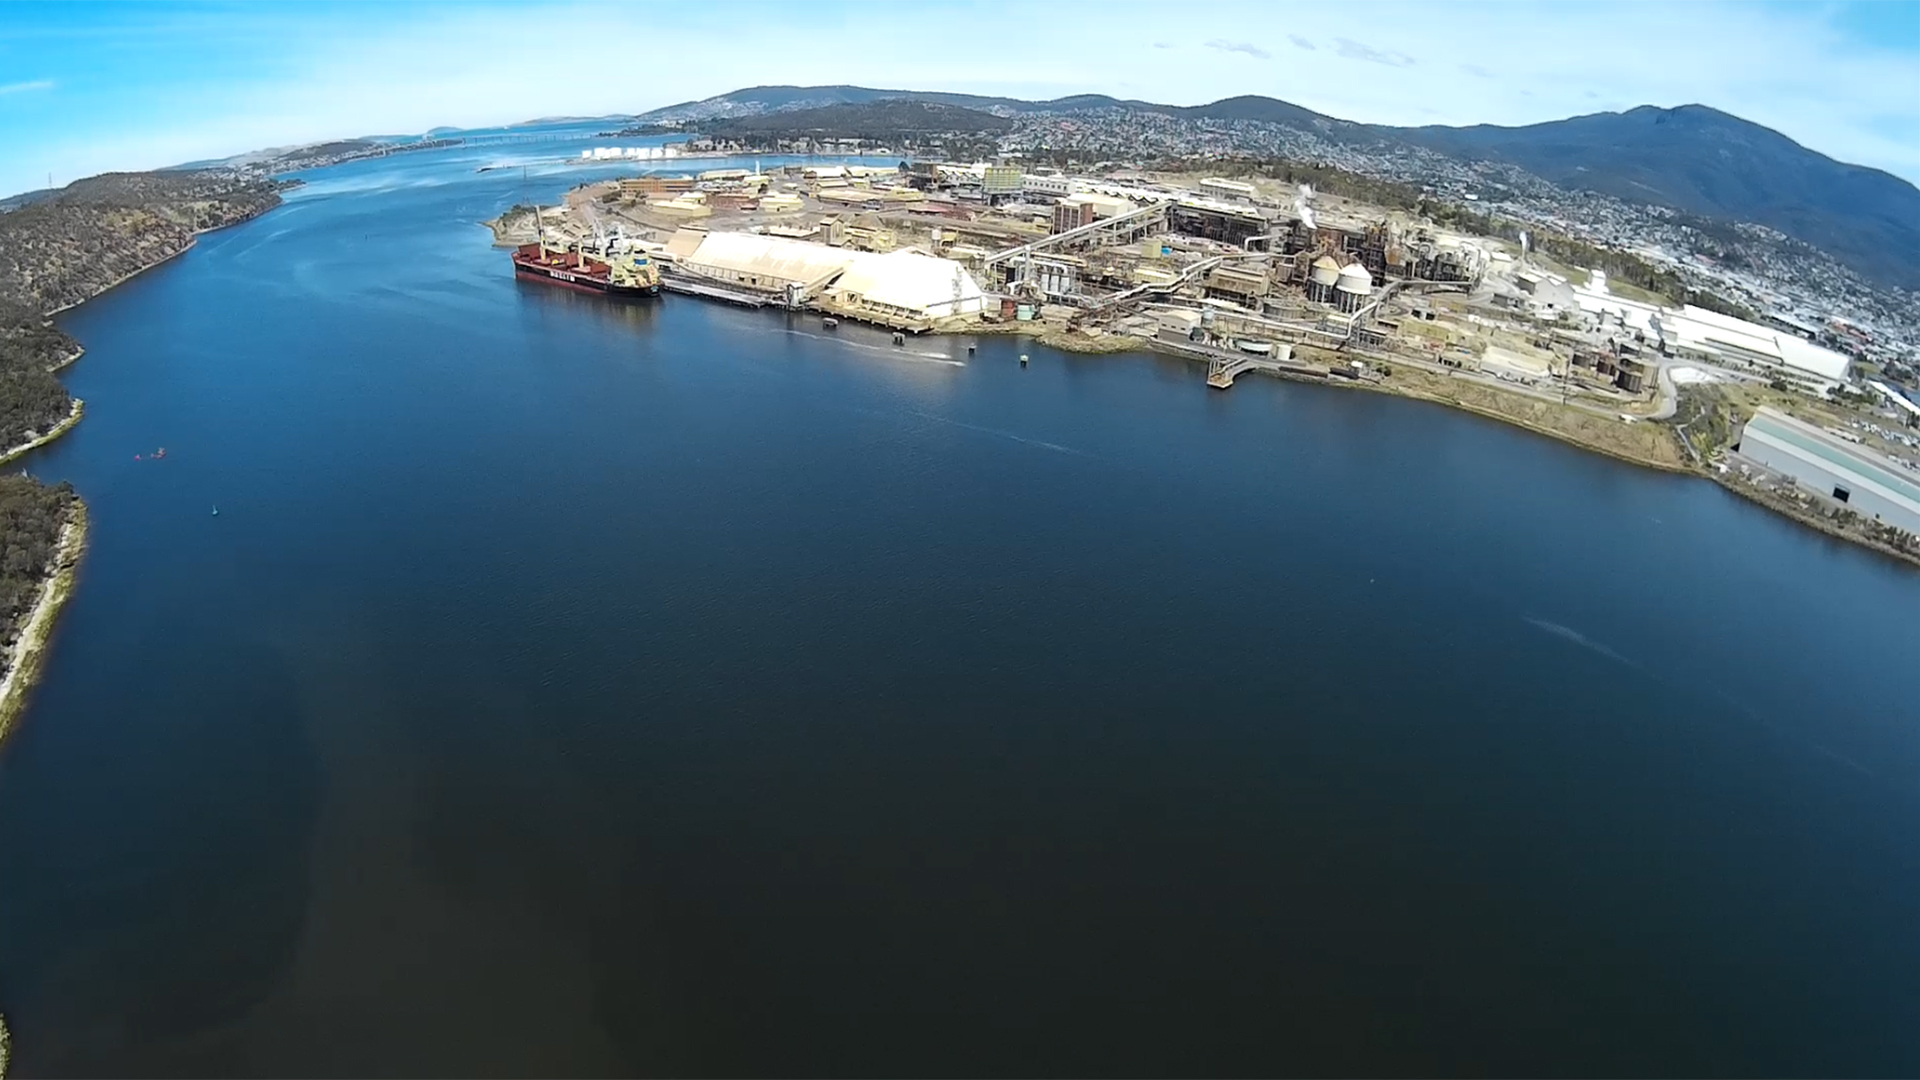 Hobart Otago from the Scout X4 - still from iLook video.